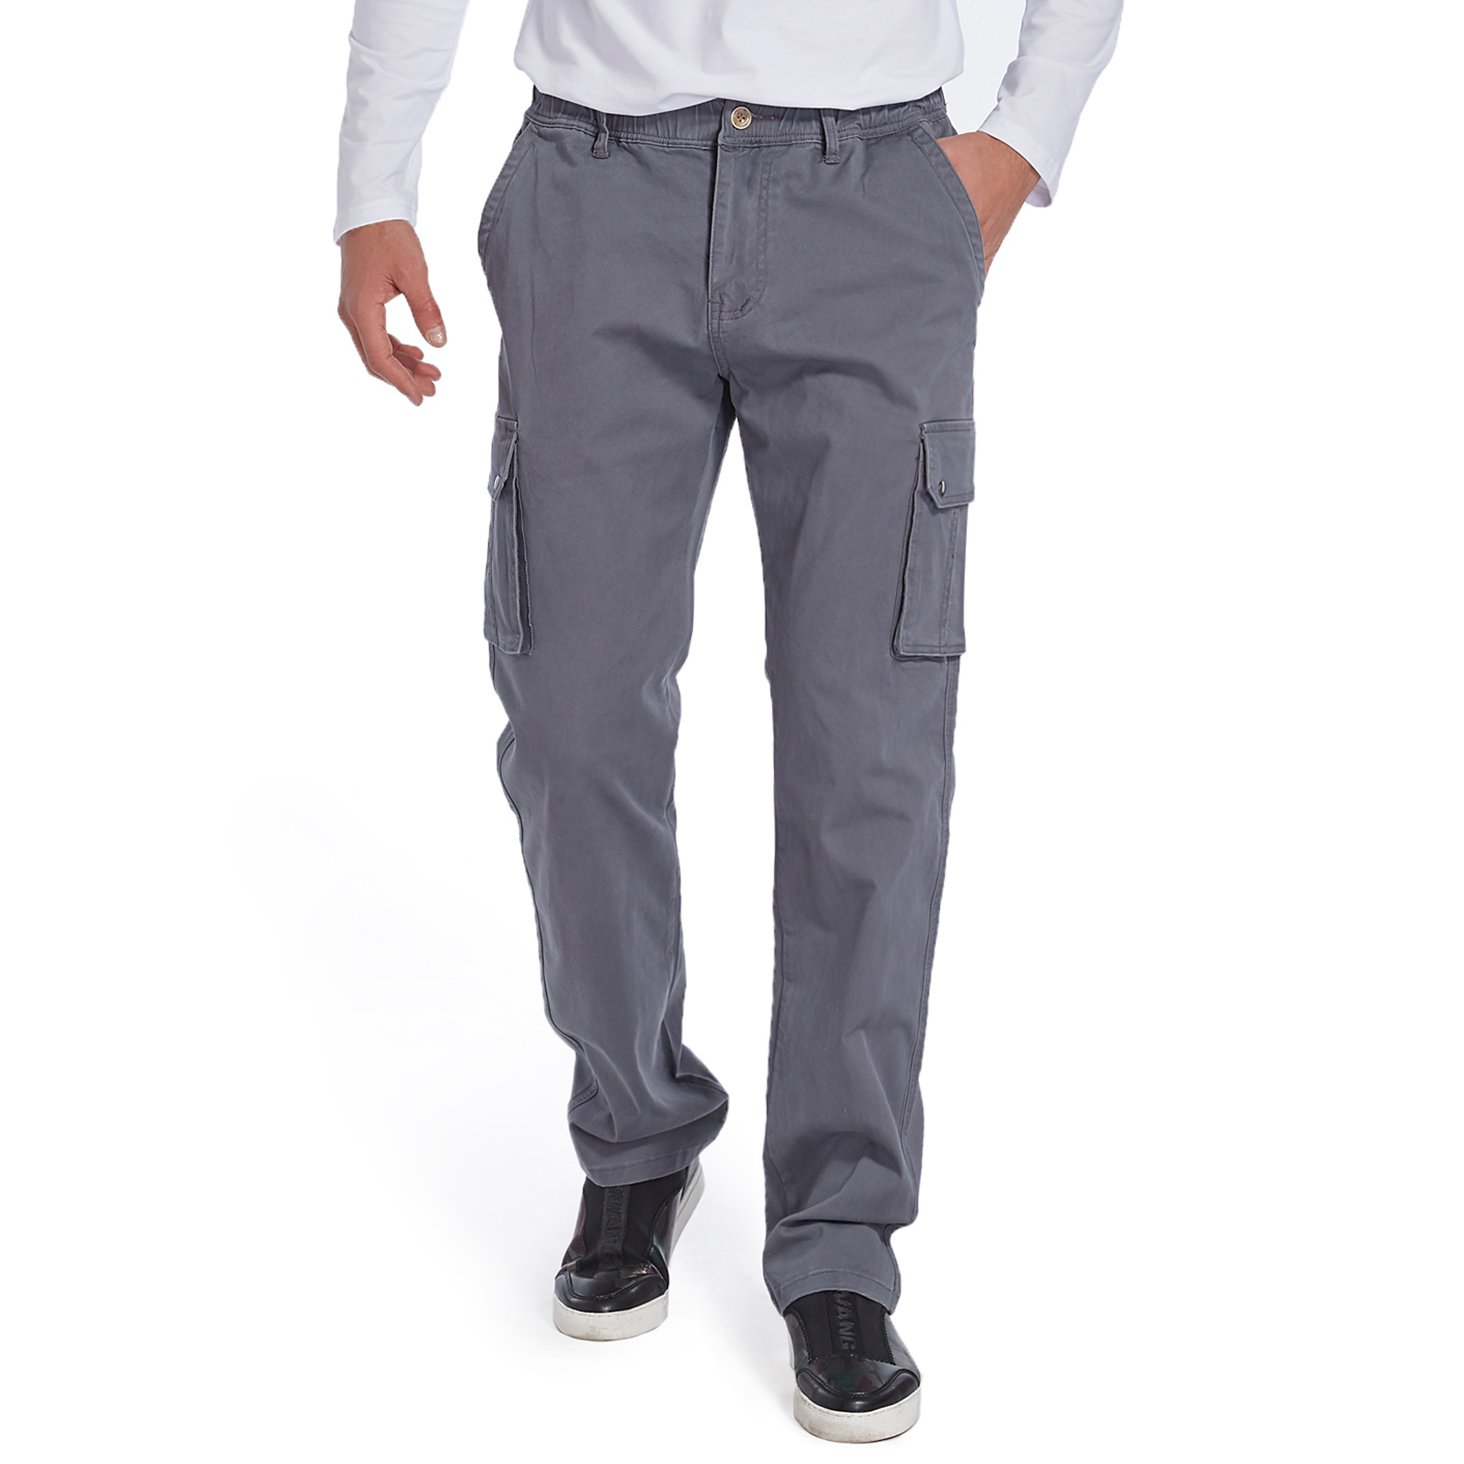 Eaglide Men's Relaxed Fit Elastic Cargo Pant, Mens Pockets Cotton Tactical Pants (Silver, 36W × 31L)